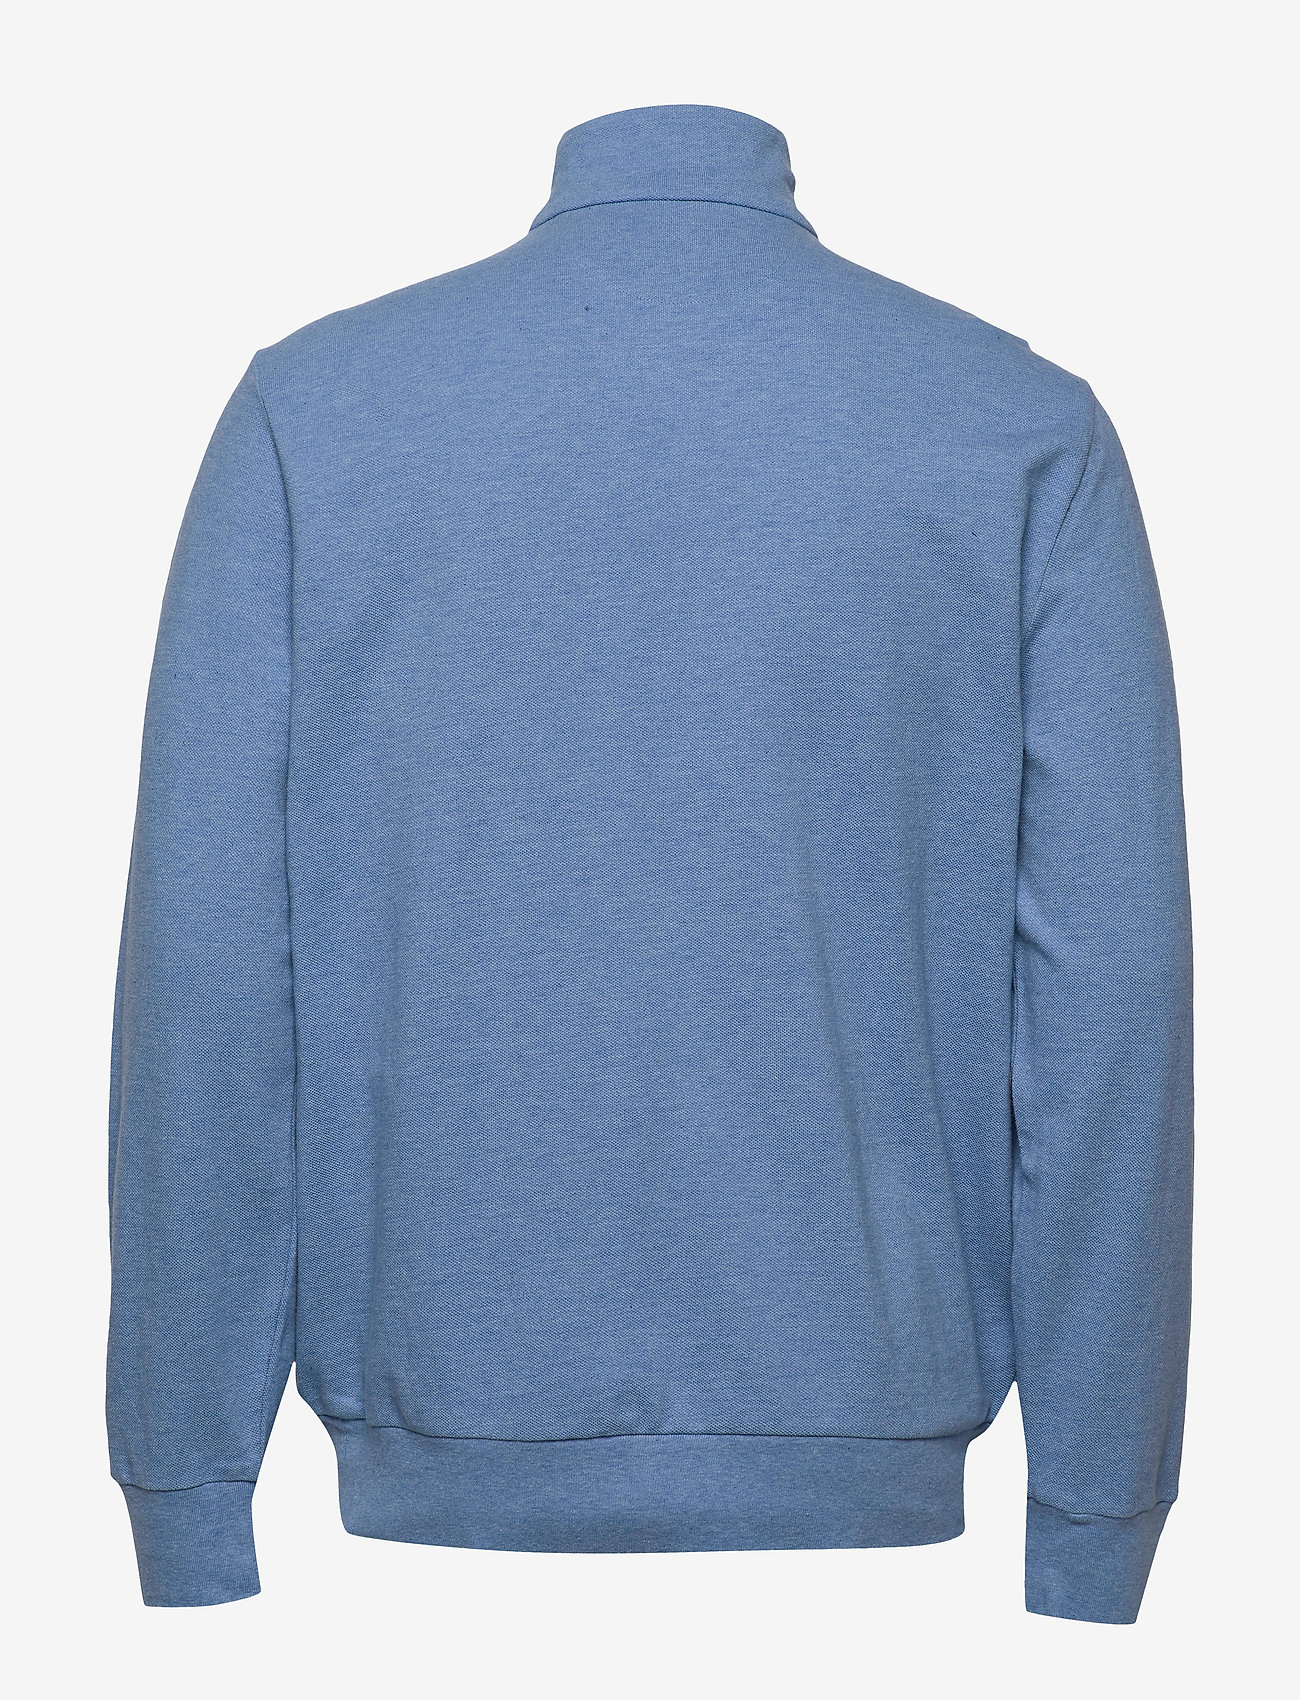 Polo Ralph Lauren Cotton Mesh Half-zip Pullover - Sweats